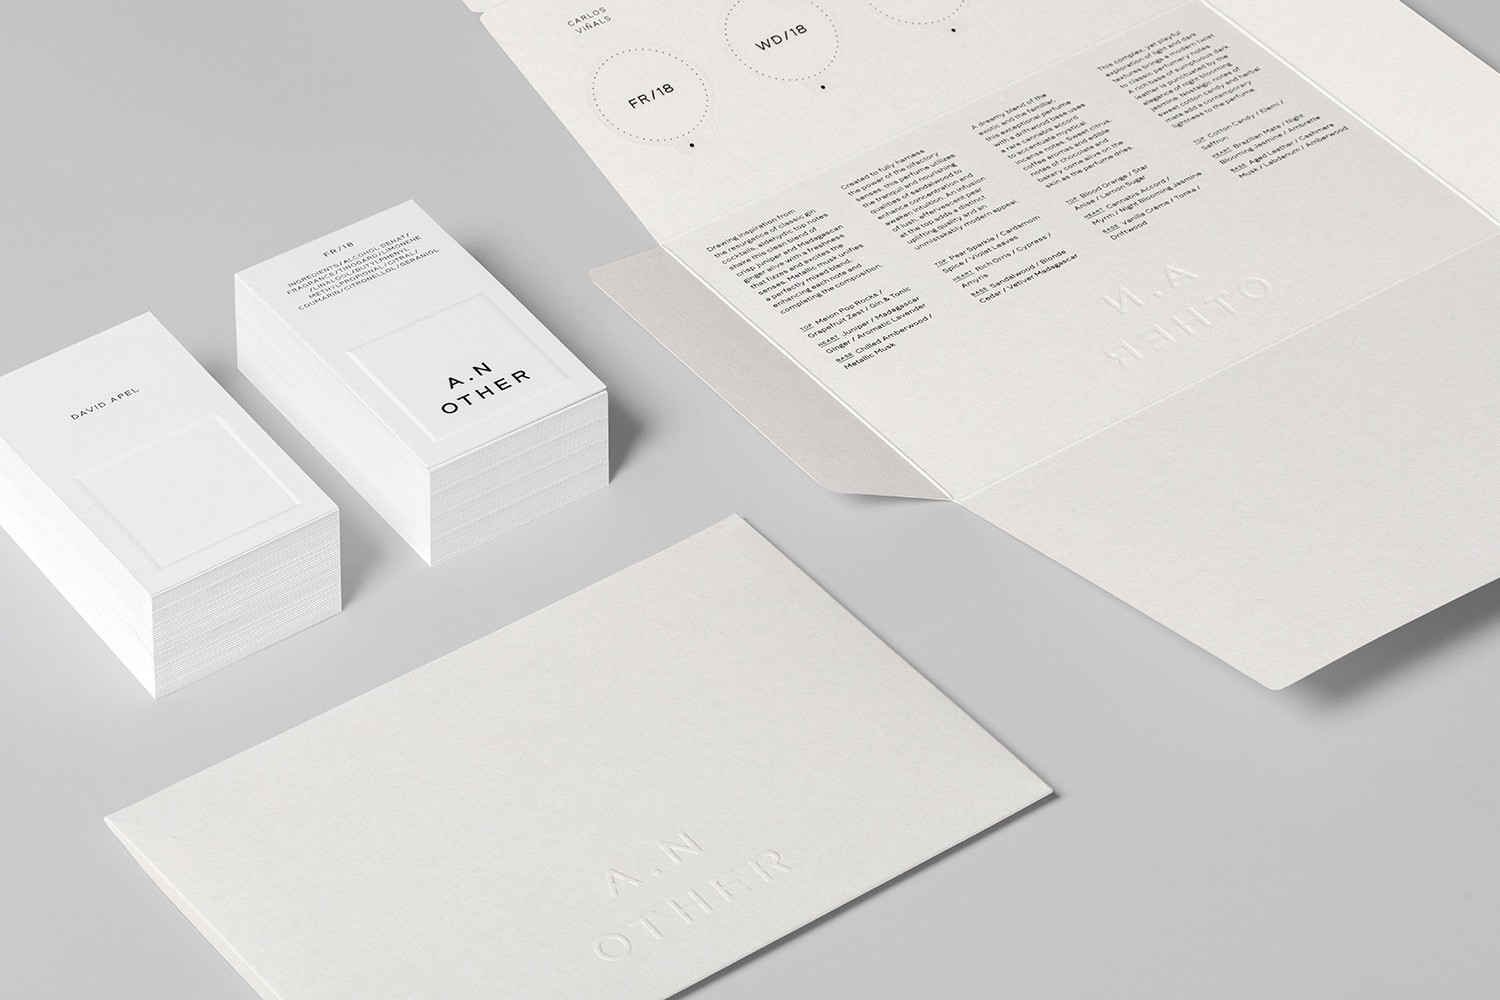 18-A-N-Other-Fragrances-Branding-Print-Socio-Design-London-UK-BPO.jpg